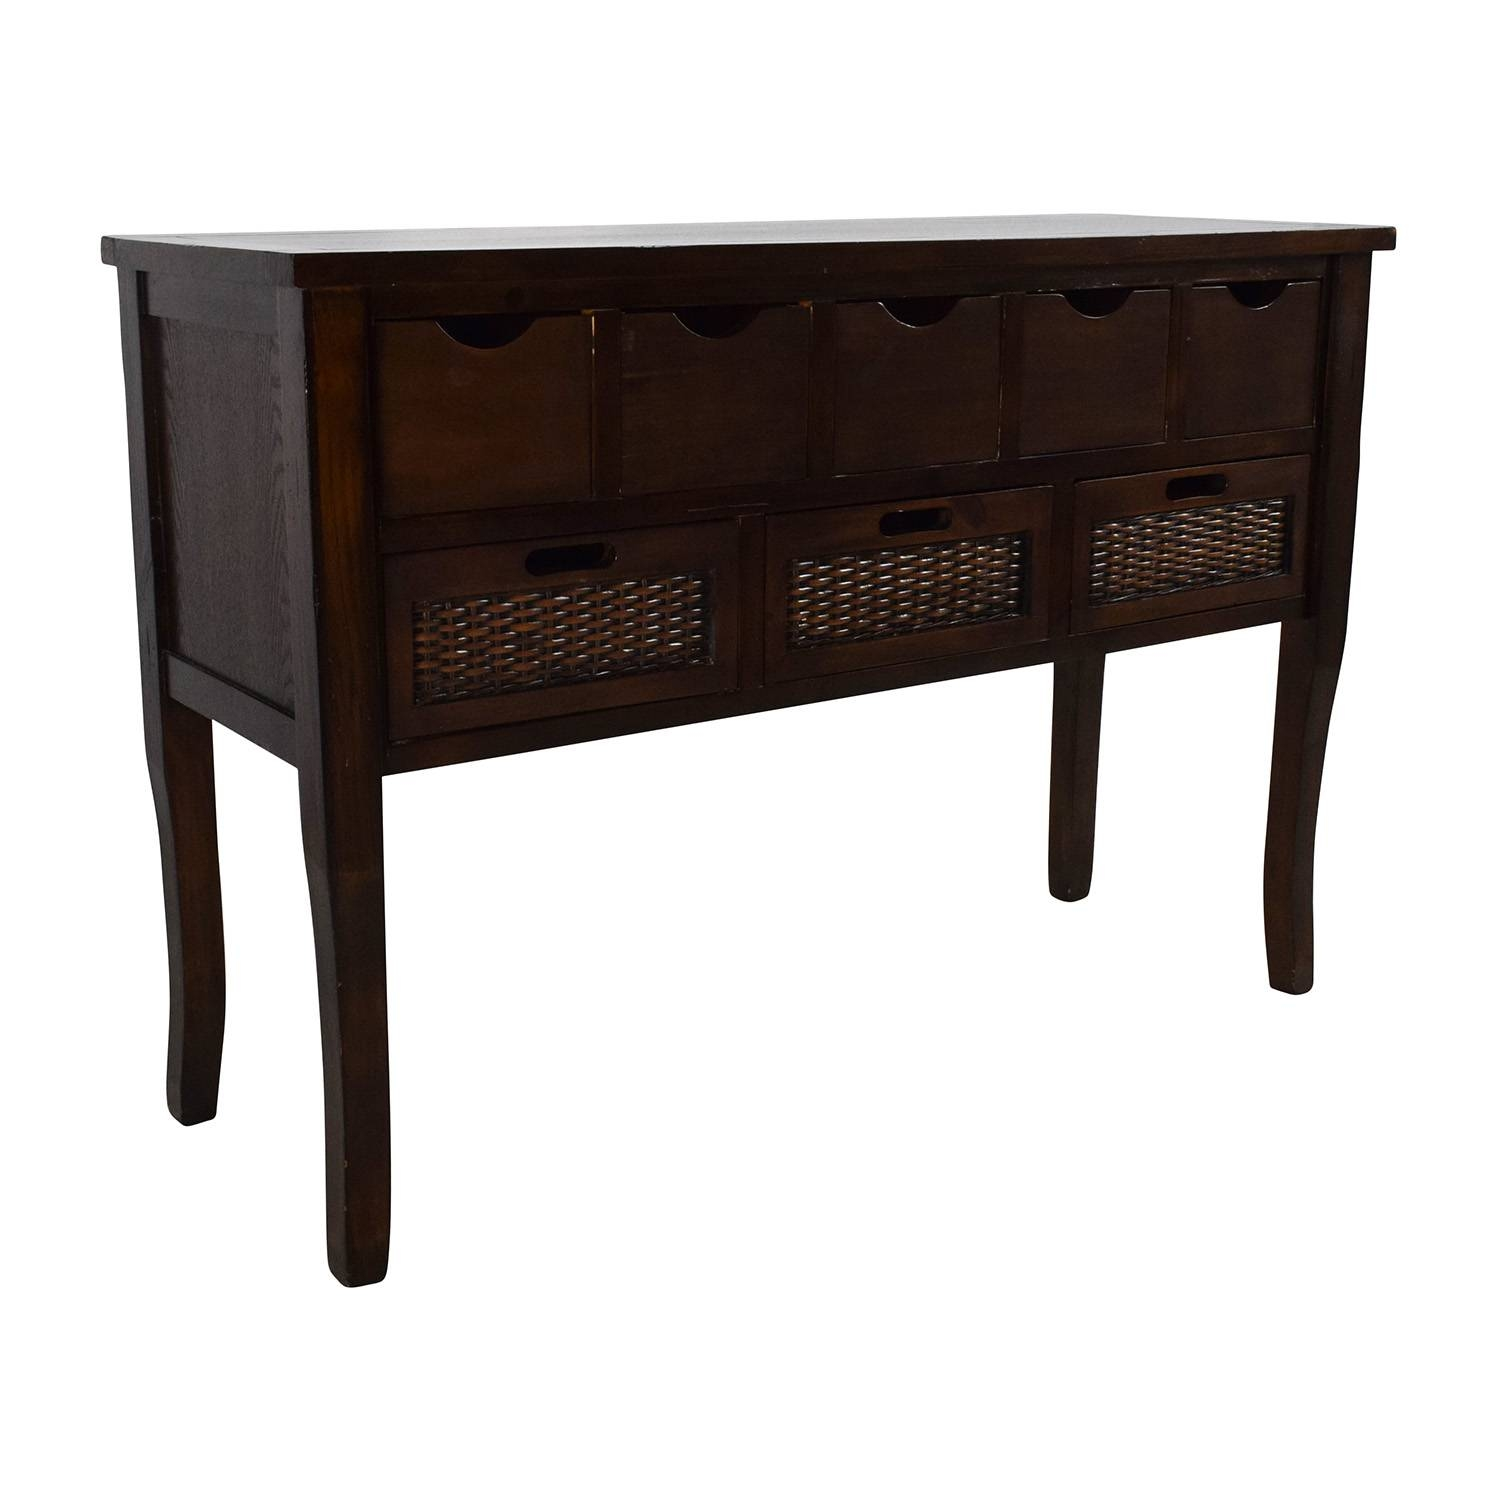 Inspiration about 65% Off – Unknown Brown Wood Multi Drawer Sideboard / Storage Throughout Multi Drawer Sideboard (#1 of 20)